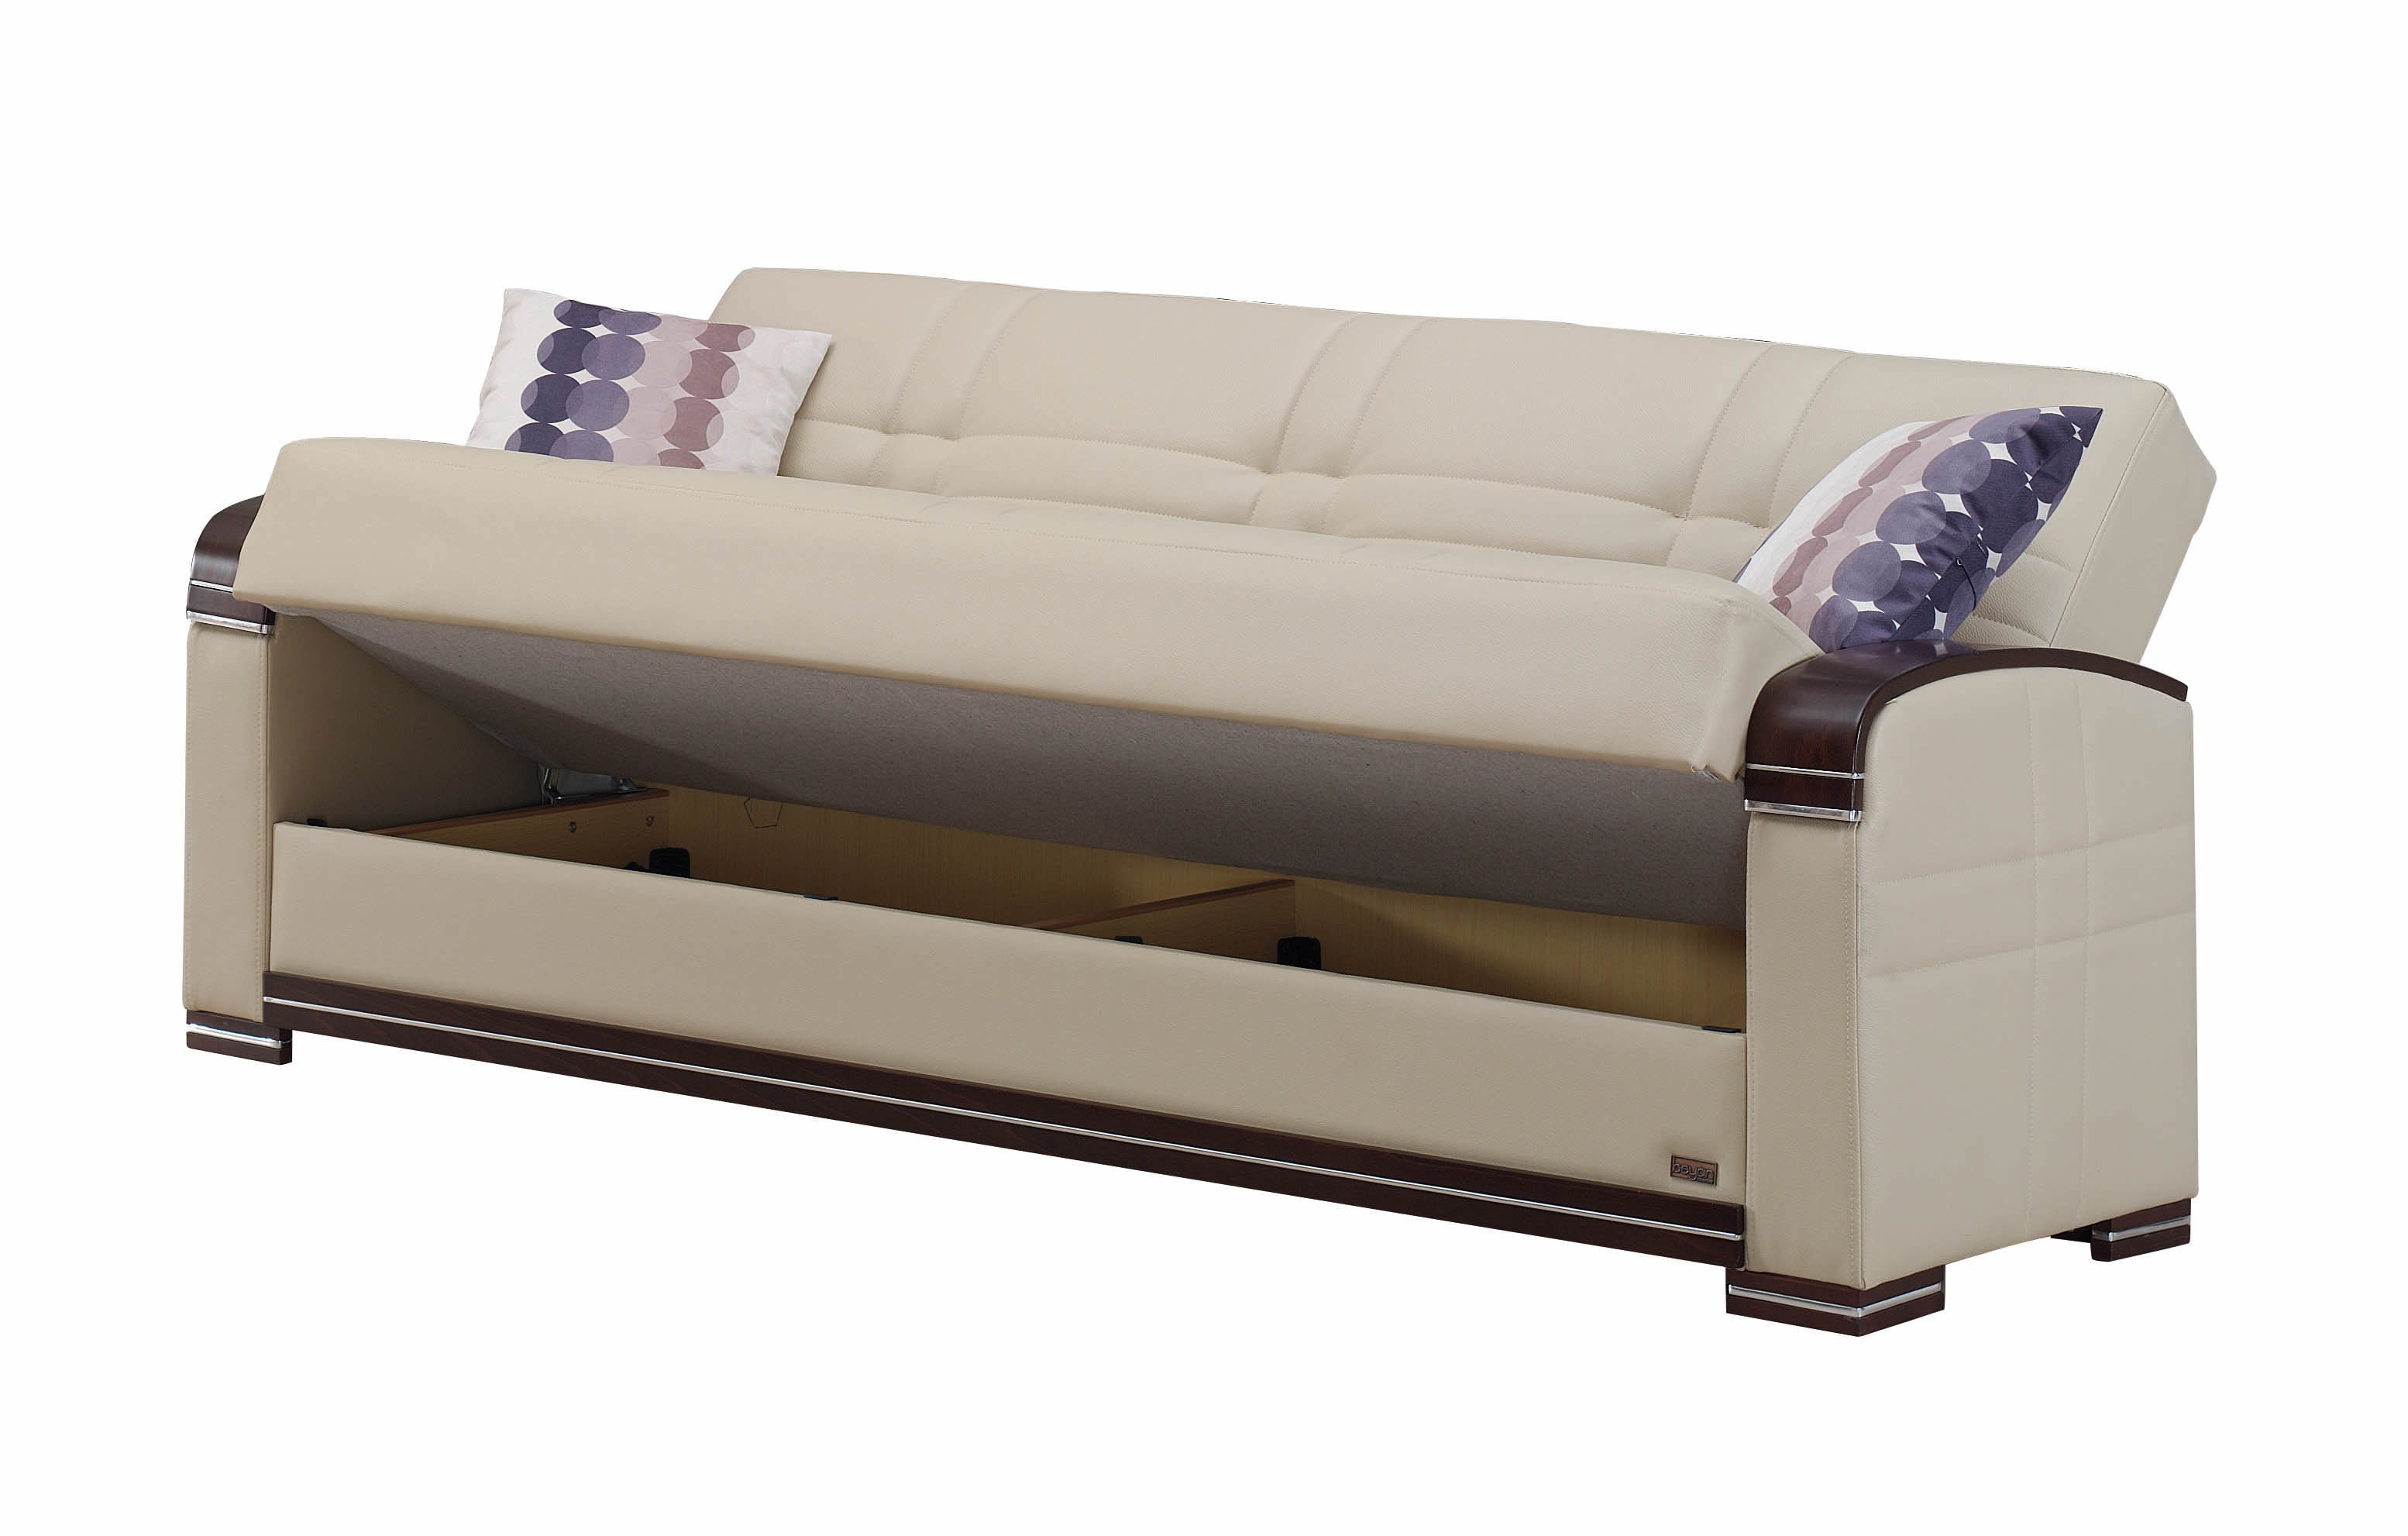 Fulton Cream Leather Sofa Bed by Empire Furniture USA